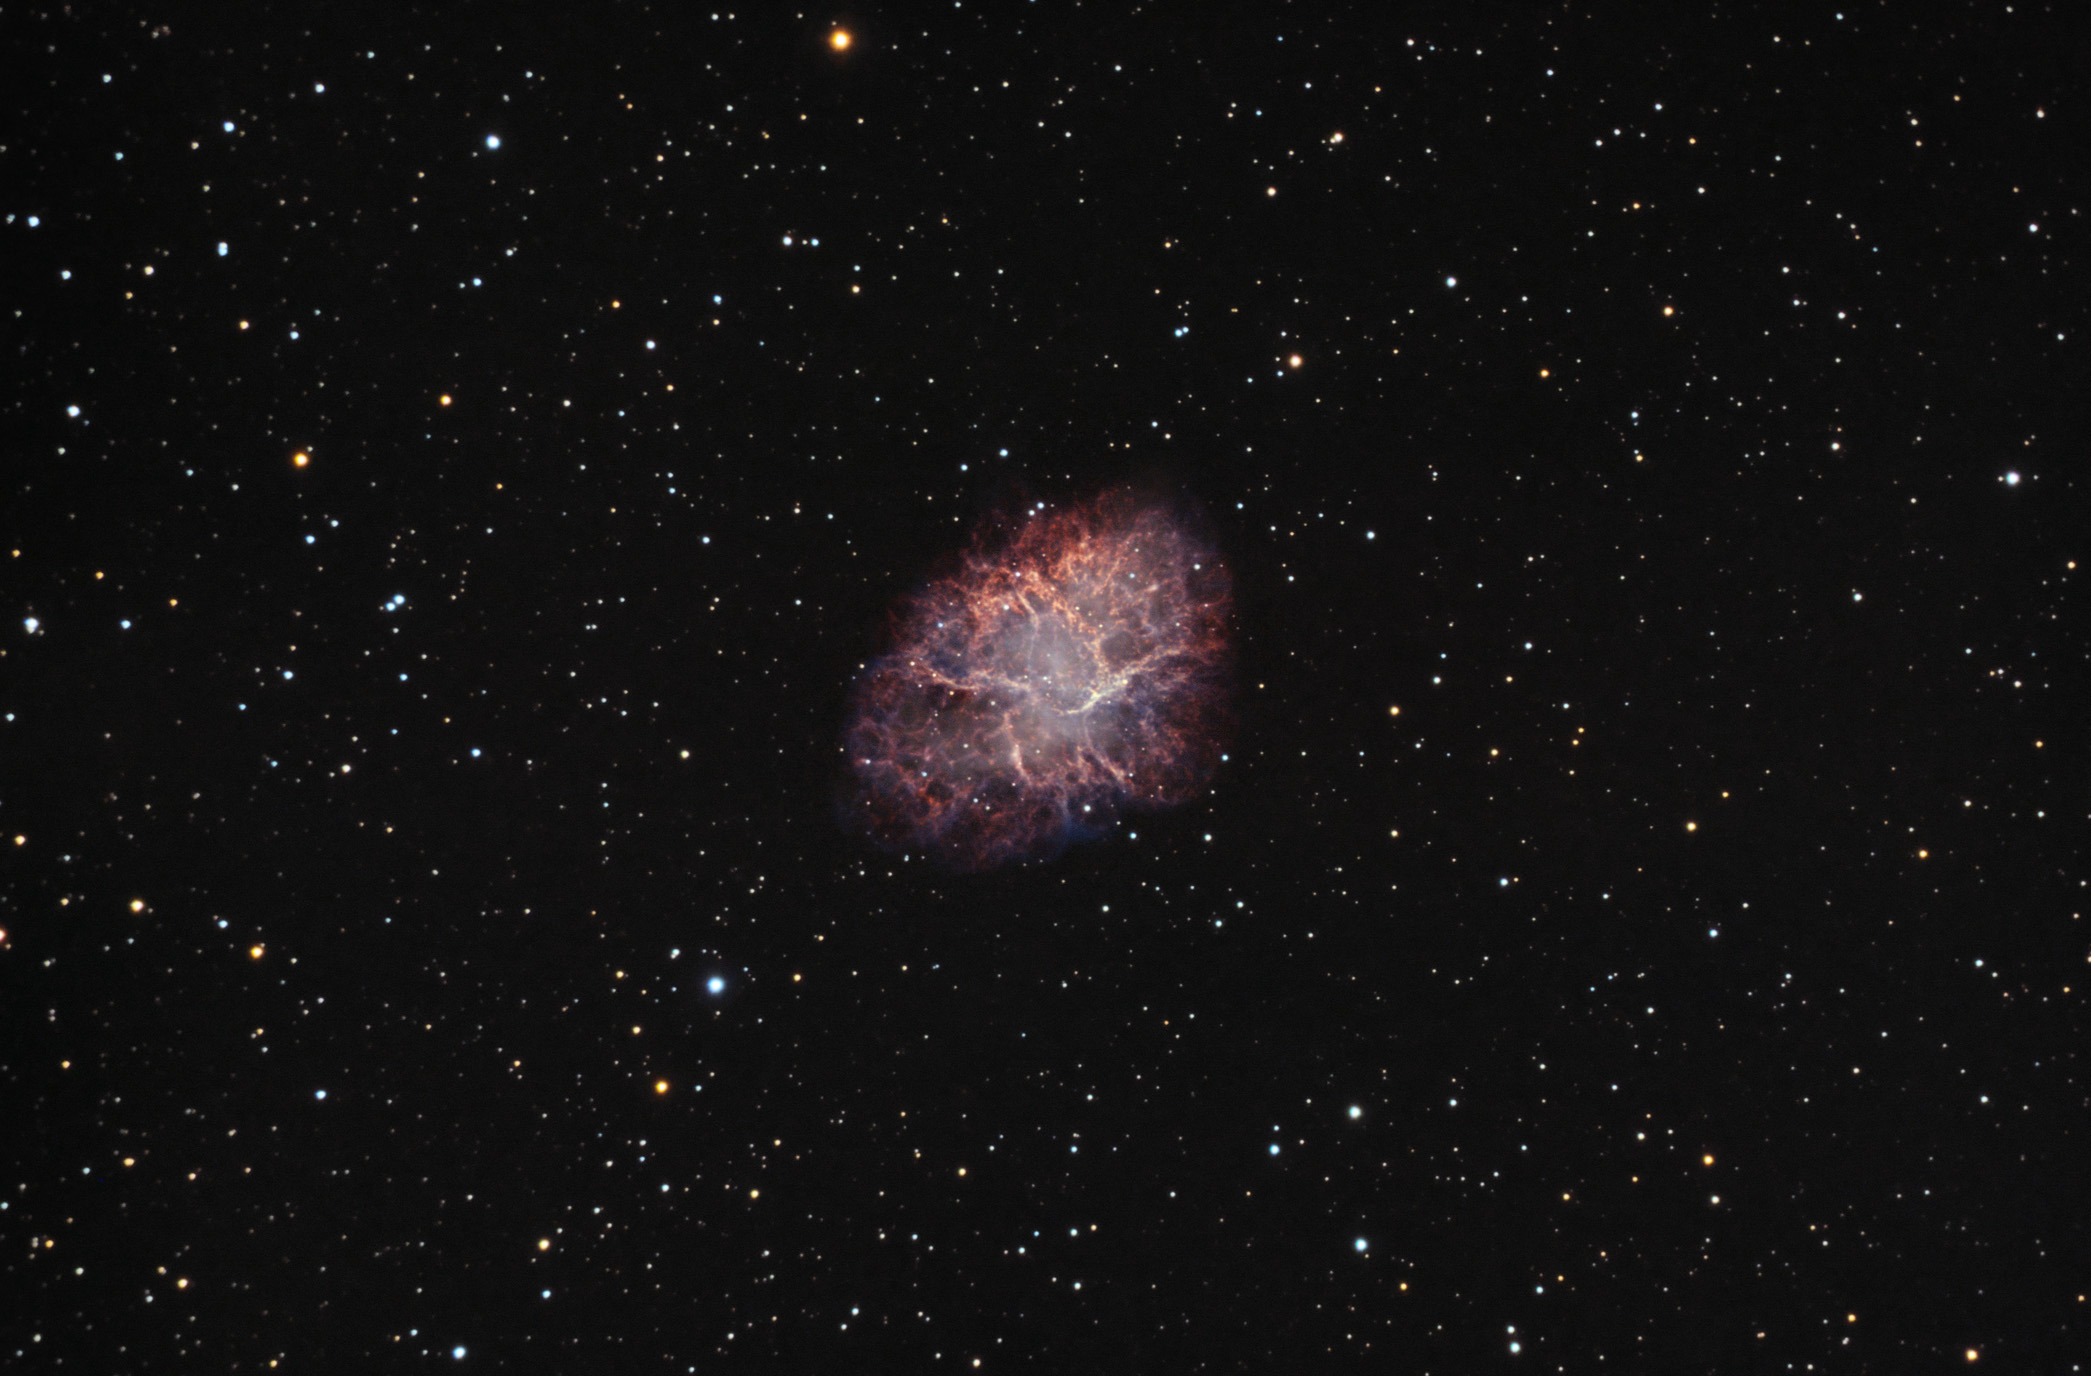 M1 Crab nebula Date:       January-February 2018 Location:   Nieborowice, Poland Telescope:  Meade ACF 10` Corrector:  AP CCDT67 Camera:     QHY163M, gain 0 Mount:      SW EQ6 Guiding:    SW 80/400 + ASI290MM Exposure:   Ha 55x5, Oiii 25x5, RGB 18:12:12x1 minute Conditions: seeing good, transparency average-poor